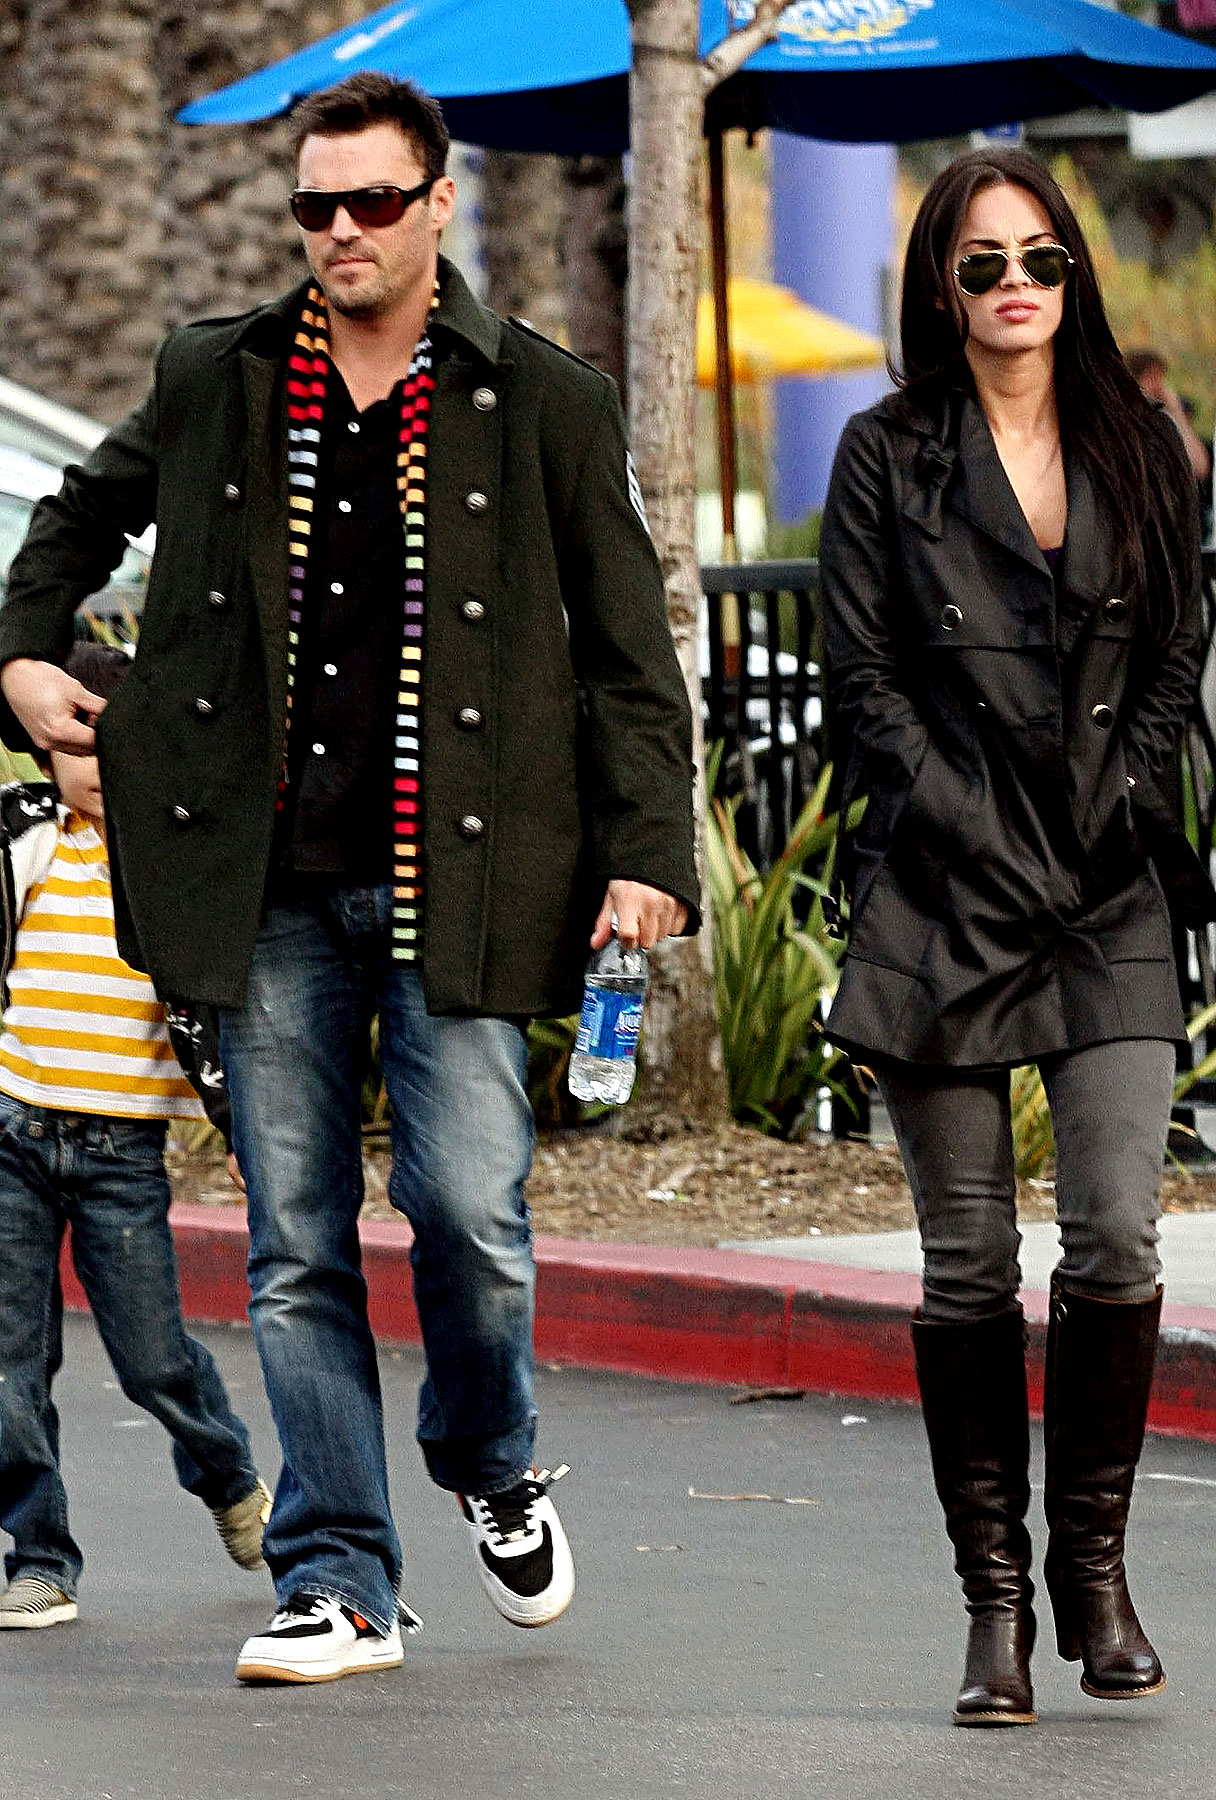 Megan Fox and Brian Austin Green: Unengaged